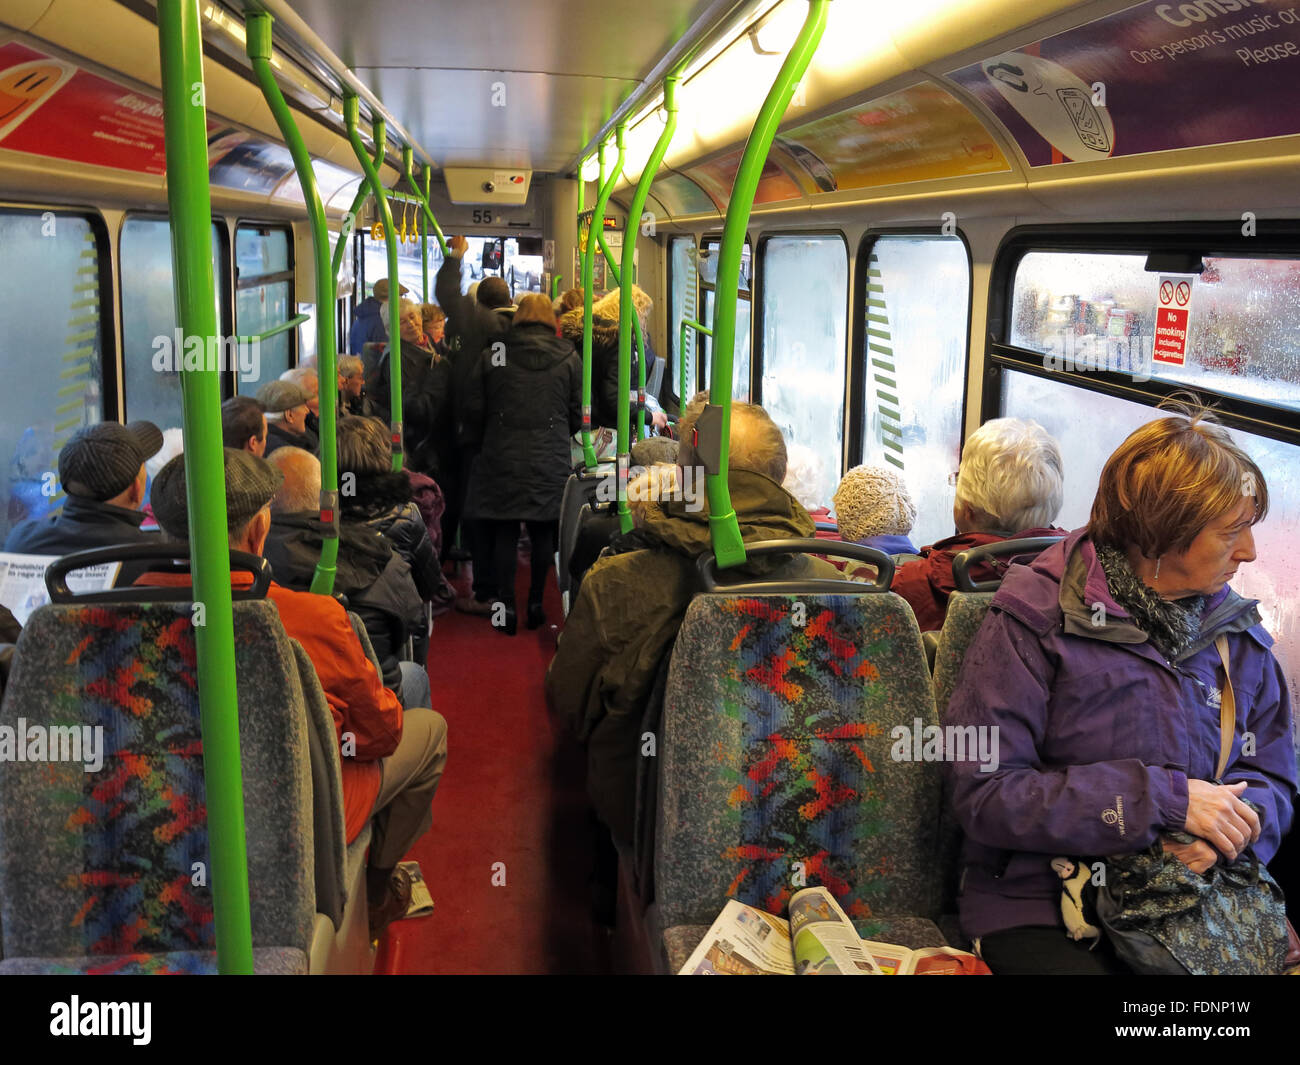 single,decker,deck,public,transport,seat,passengers,travel,travellers,inside,travelers,busy,WBC,borough,council,GB,Great,British,Britain,UK,United,Kingdom,UK,with,passengers,high,quality,Optare,Solo,Hybrid,Midas,Card,commuter,shoppers,Single decker,Public Transport,Warrington Borough Council,GoTonySmith,@HotpixUK,unique,images,special,route,routes,usage,de-regulated,award,win,winning,NetworkWarrington,Network,local,community,service,pass,free,Corporation,Tramways,Dennis,Dart,Darts,SLF,Charter,Mark,Standard,OHSAS,18001,Buy Pictures of,Buy Images Of,Images of,Stock Images,United Kingdom,Free Pass,Dennis dart,Charter Mark Standard